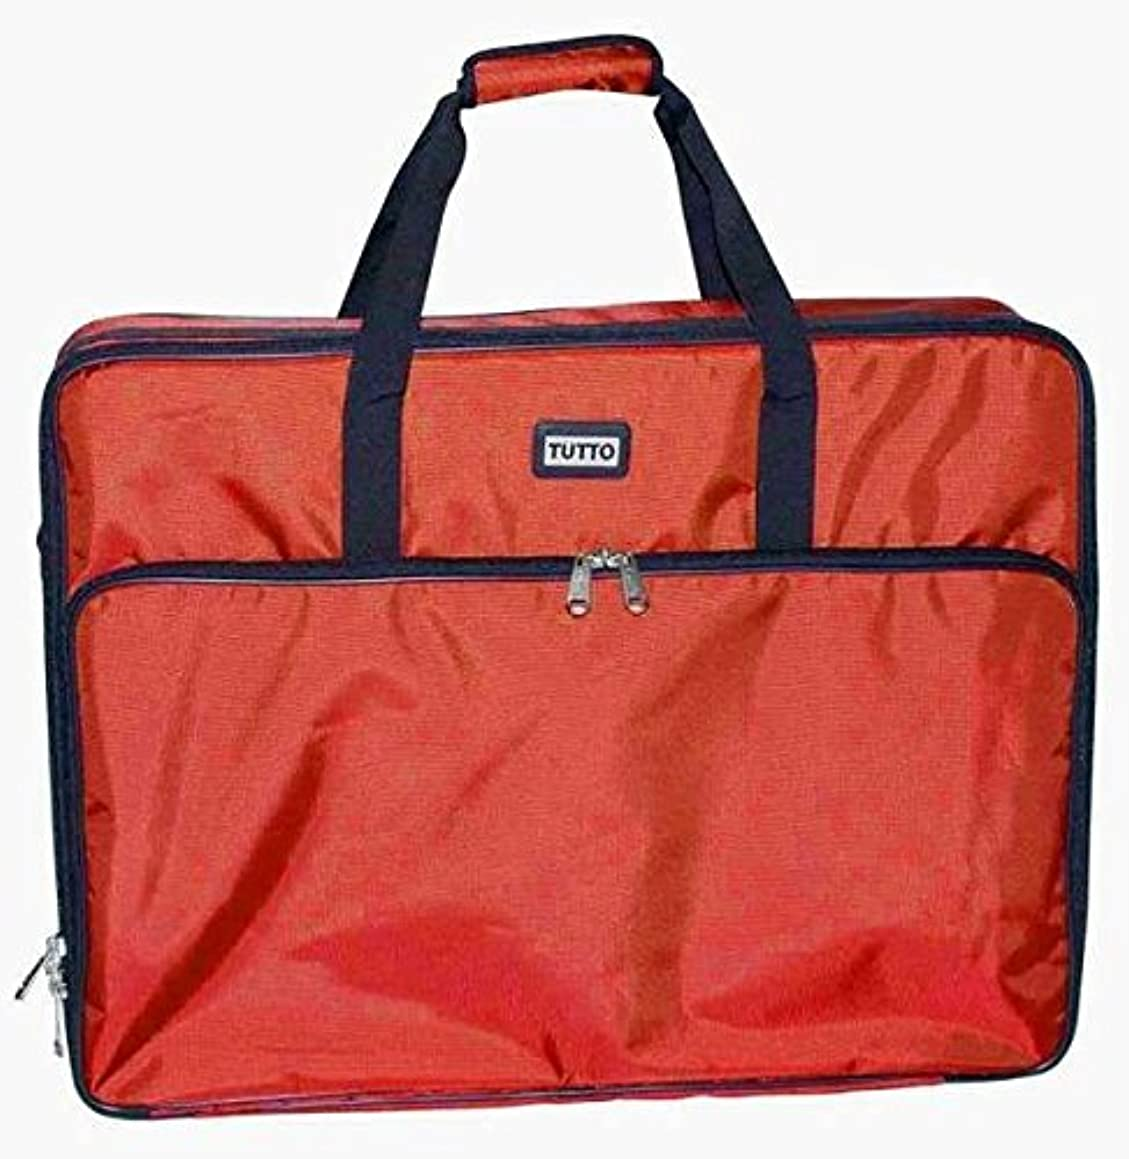 Tutto 6226CEM Project Bag, Red